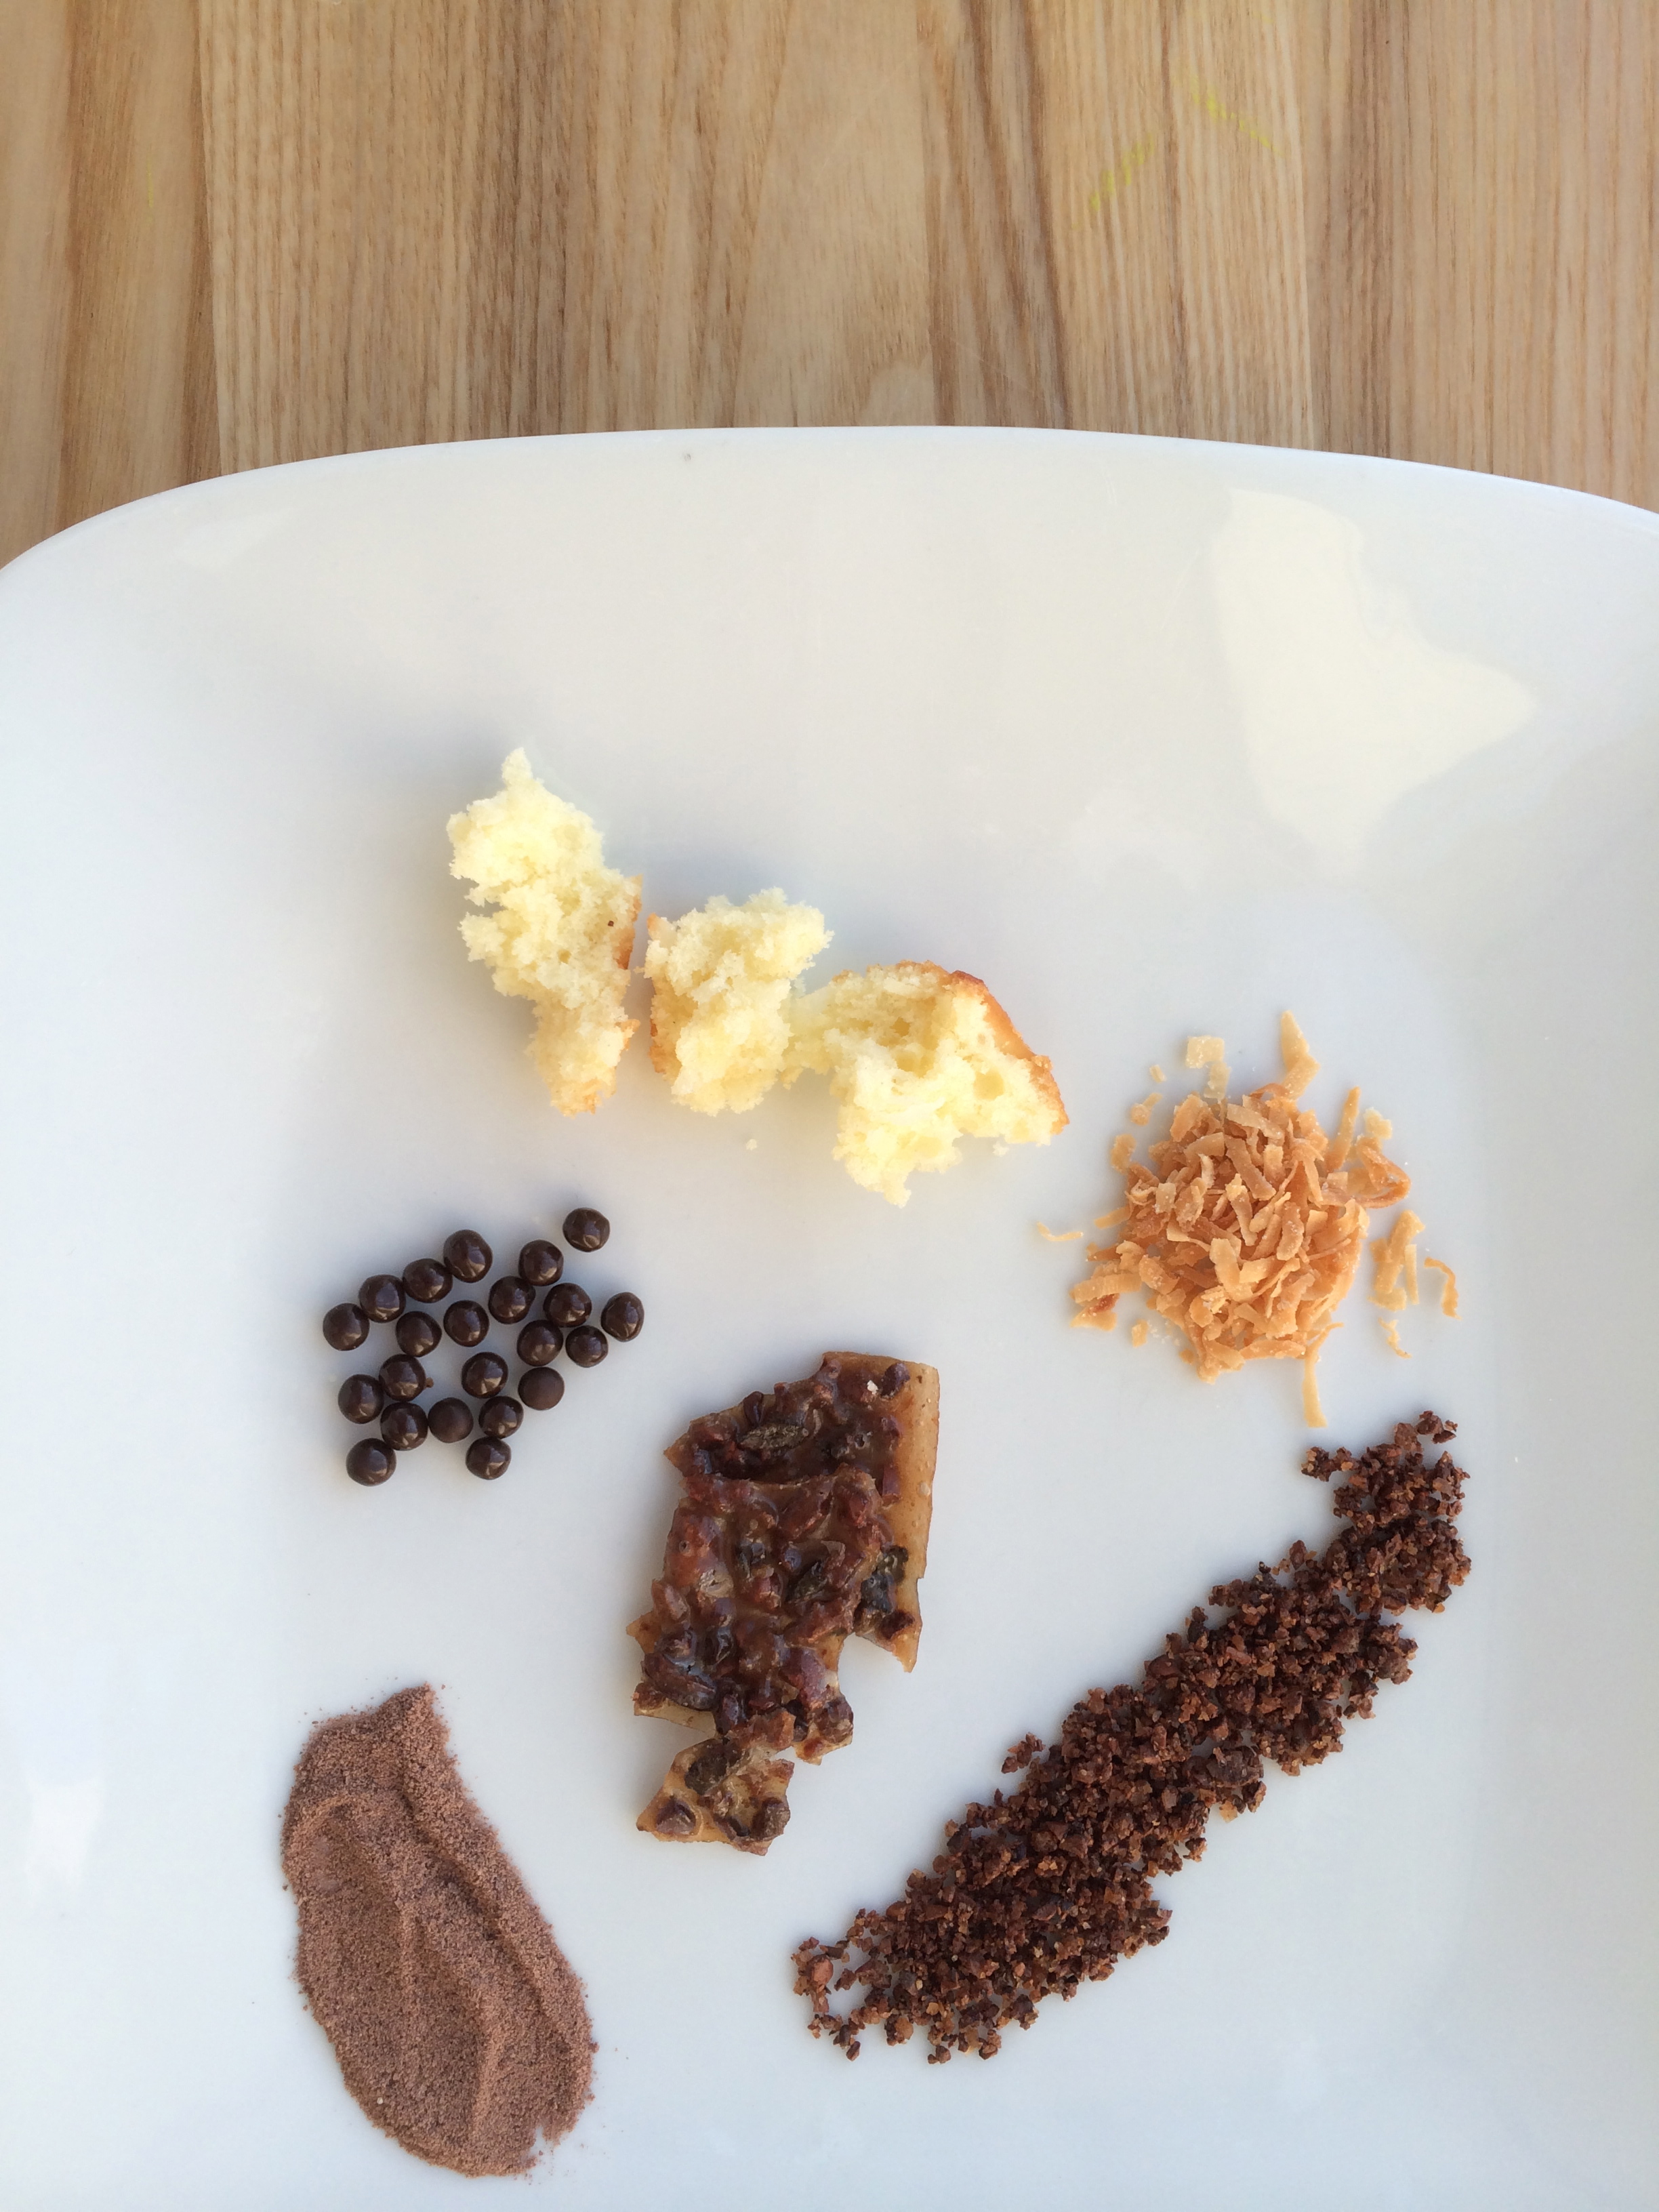 Here are the components on a separate plate. It consists of coconut cake, toasted coconut, chocolate pearls, chocolate cake crumbs, and cocoa nib crumble. I also added the cocoa nib crumble in its original state, a tuile.